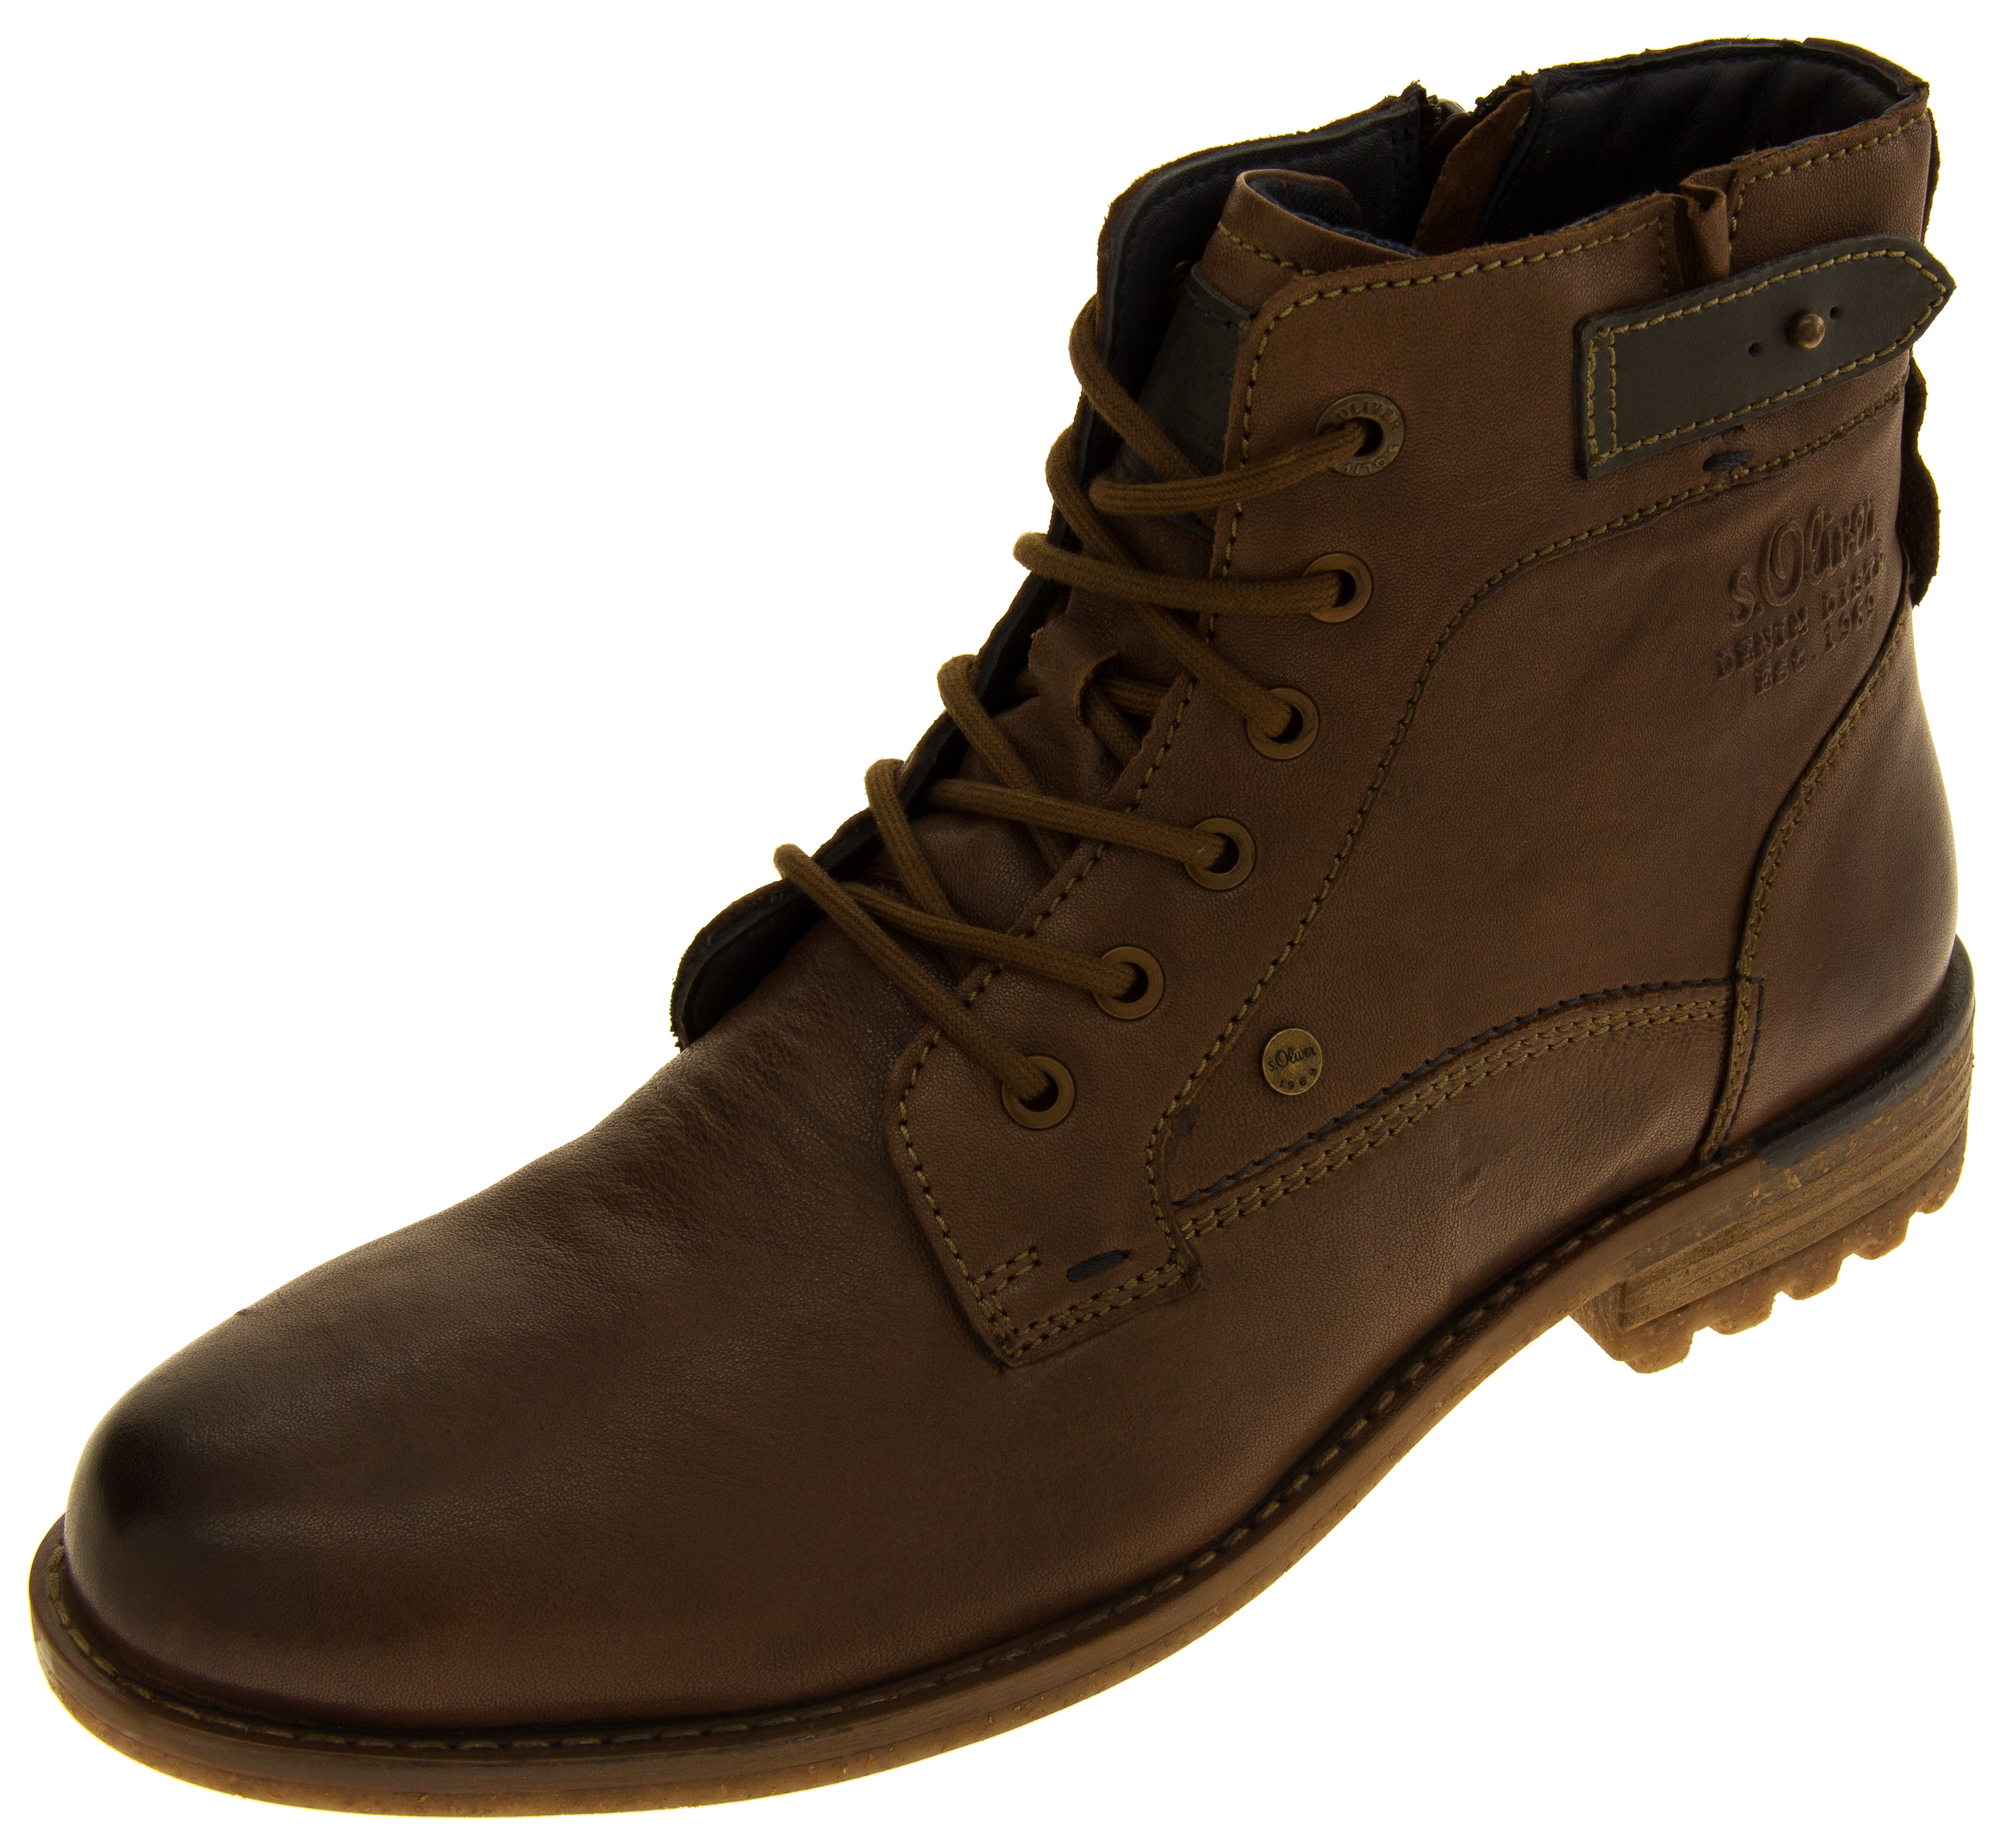 mens s oliver genuine leather boots casual lace up ankle. Black Bedroom Furniture Sets. Home Design Ideas